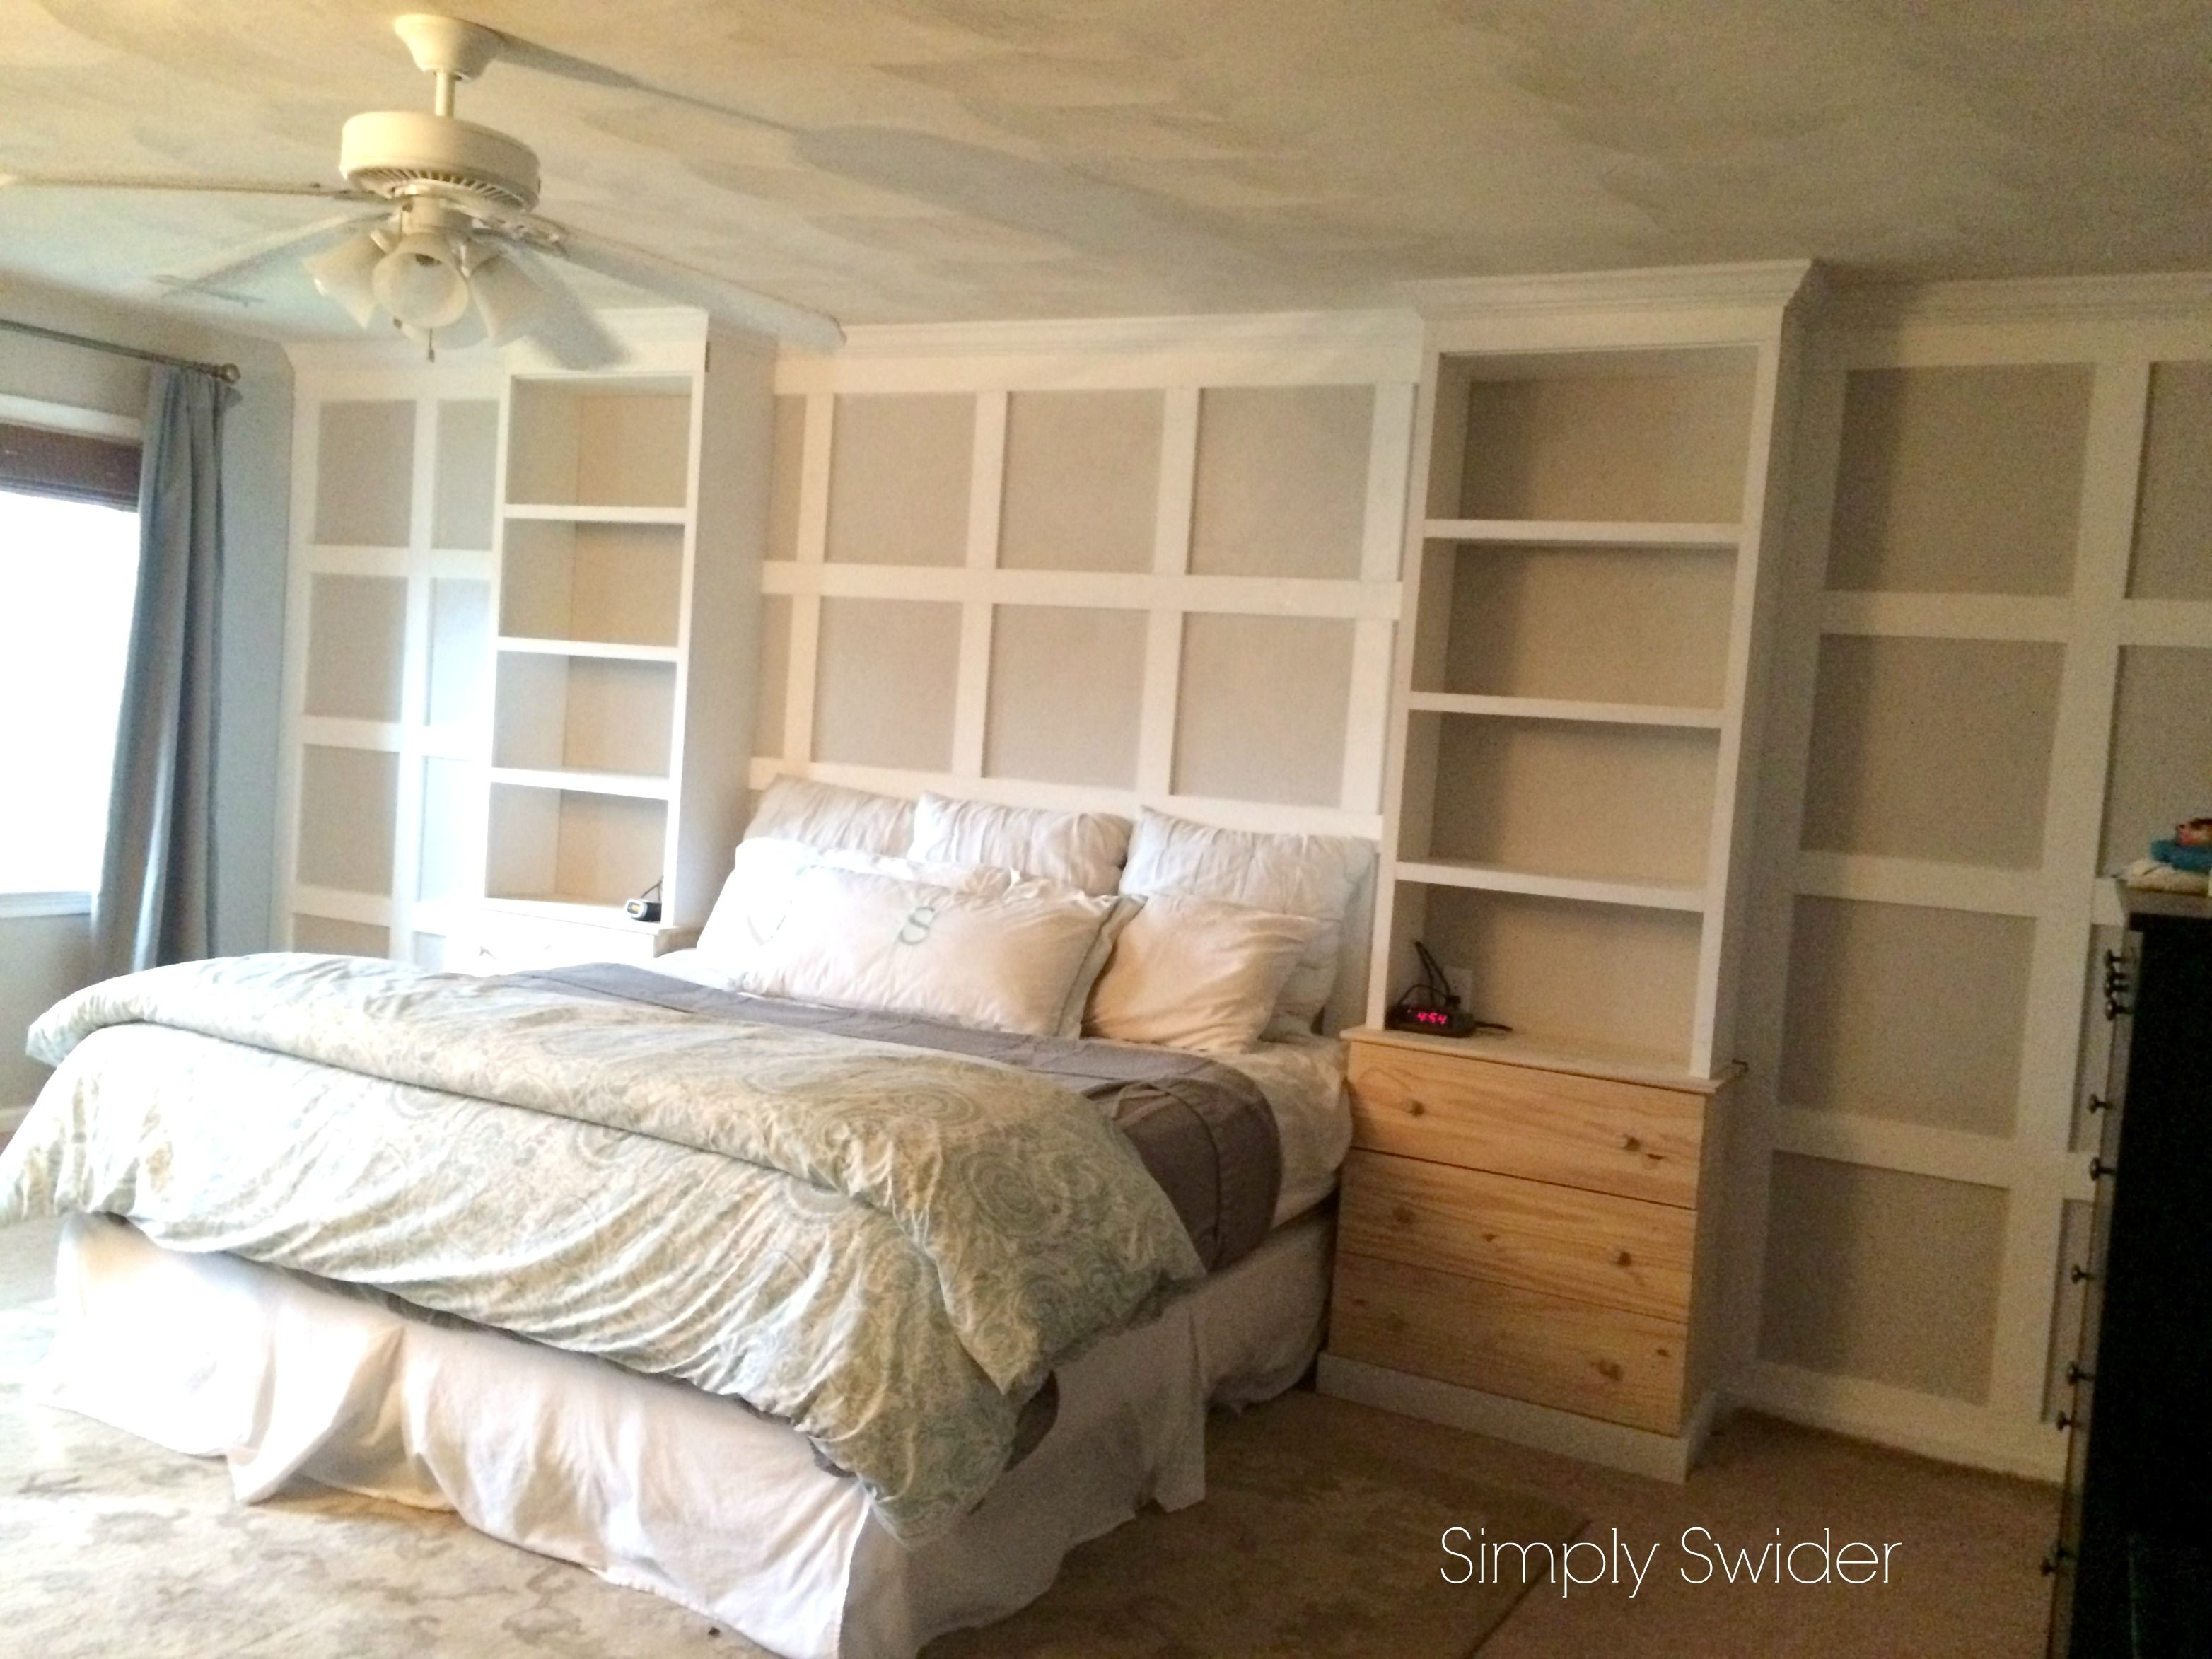 Built Ins In The Master Bedroom With An Ikea Hack Bedroom Built